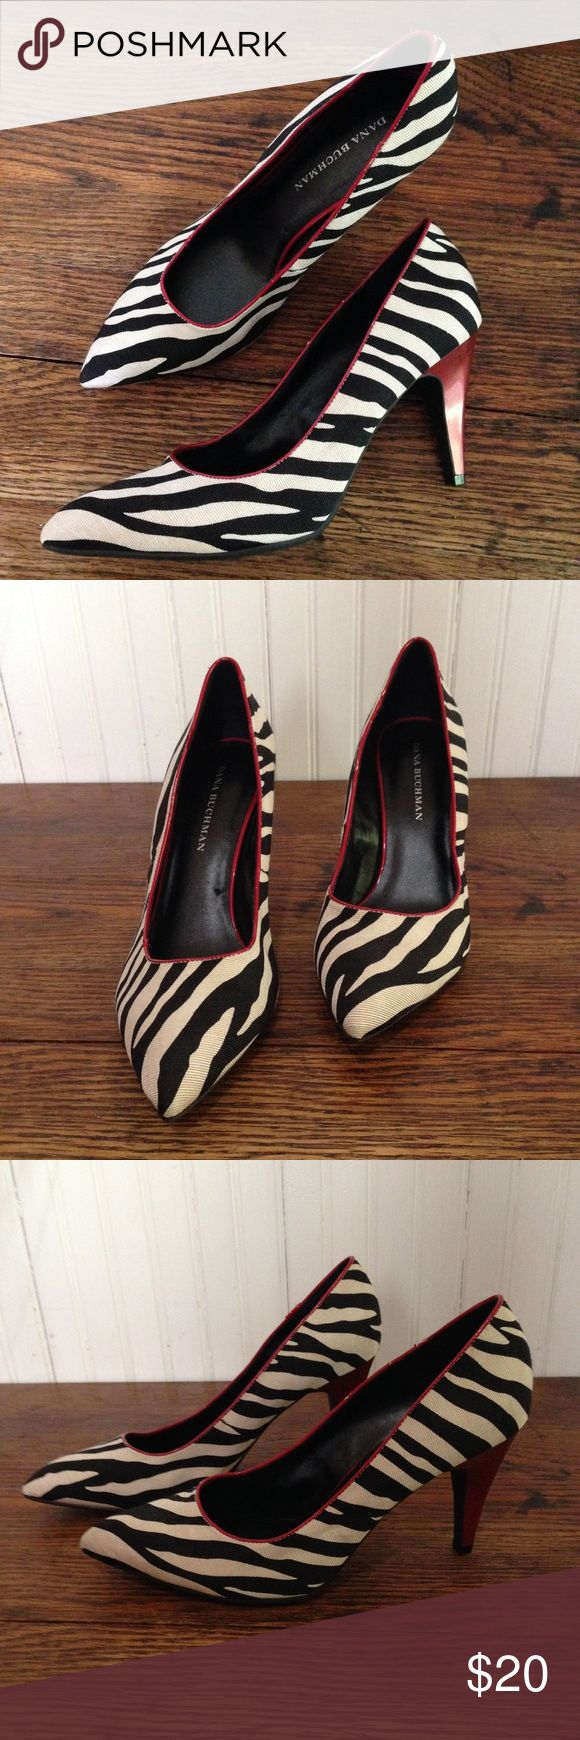 """Zebra heels size 8.5 Zebra heels  with red, size 8.5, 4"""" heels, some cracking on the red but otherwise good condition Dana Buchman Shoes Heels"""